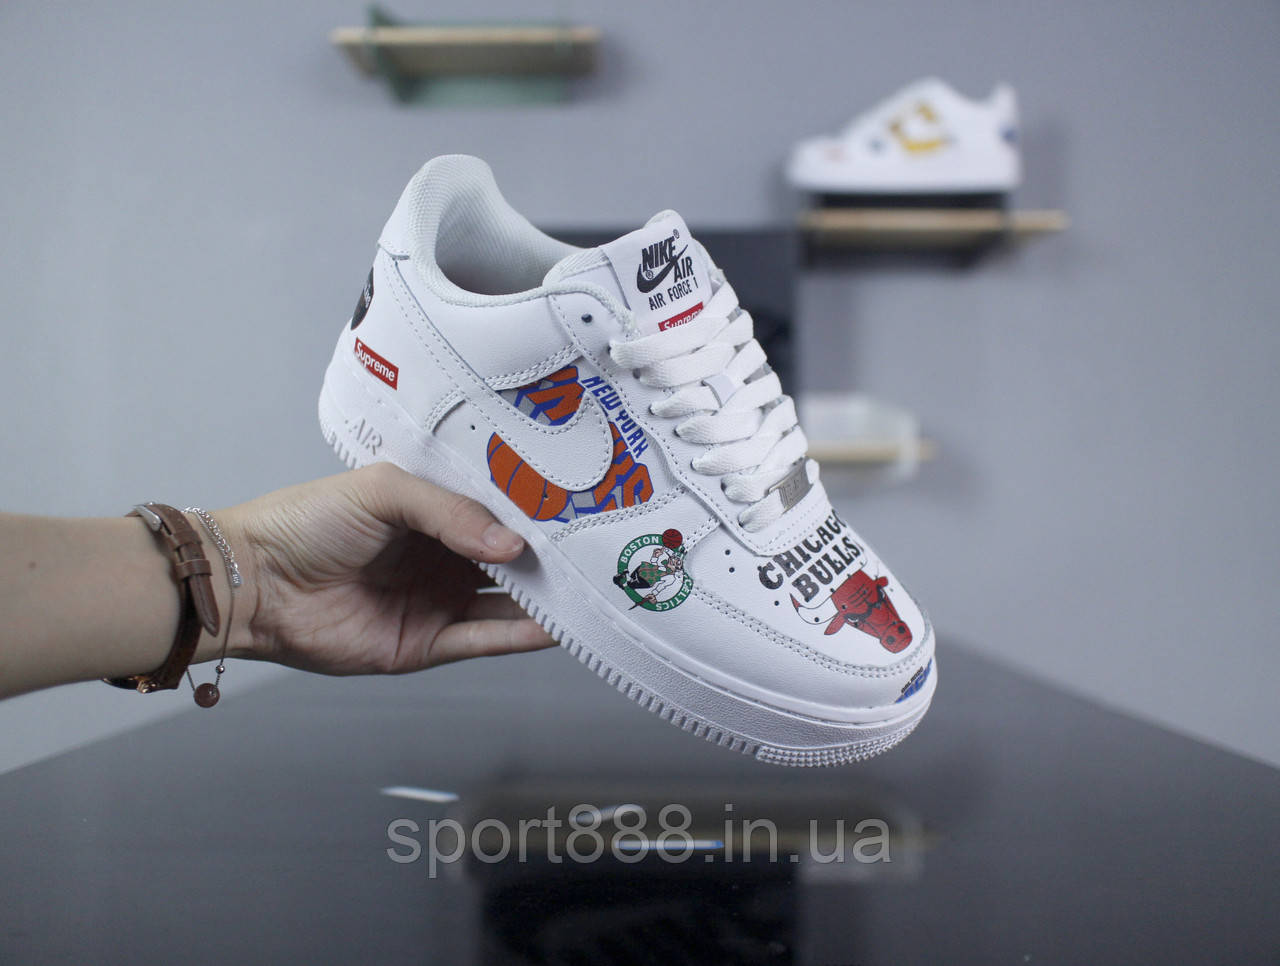 sale retailer 121b0 bf7ba Supreme x NBA x Nike Air Force 1 Low кроссовки